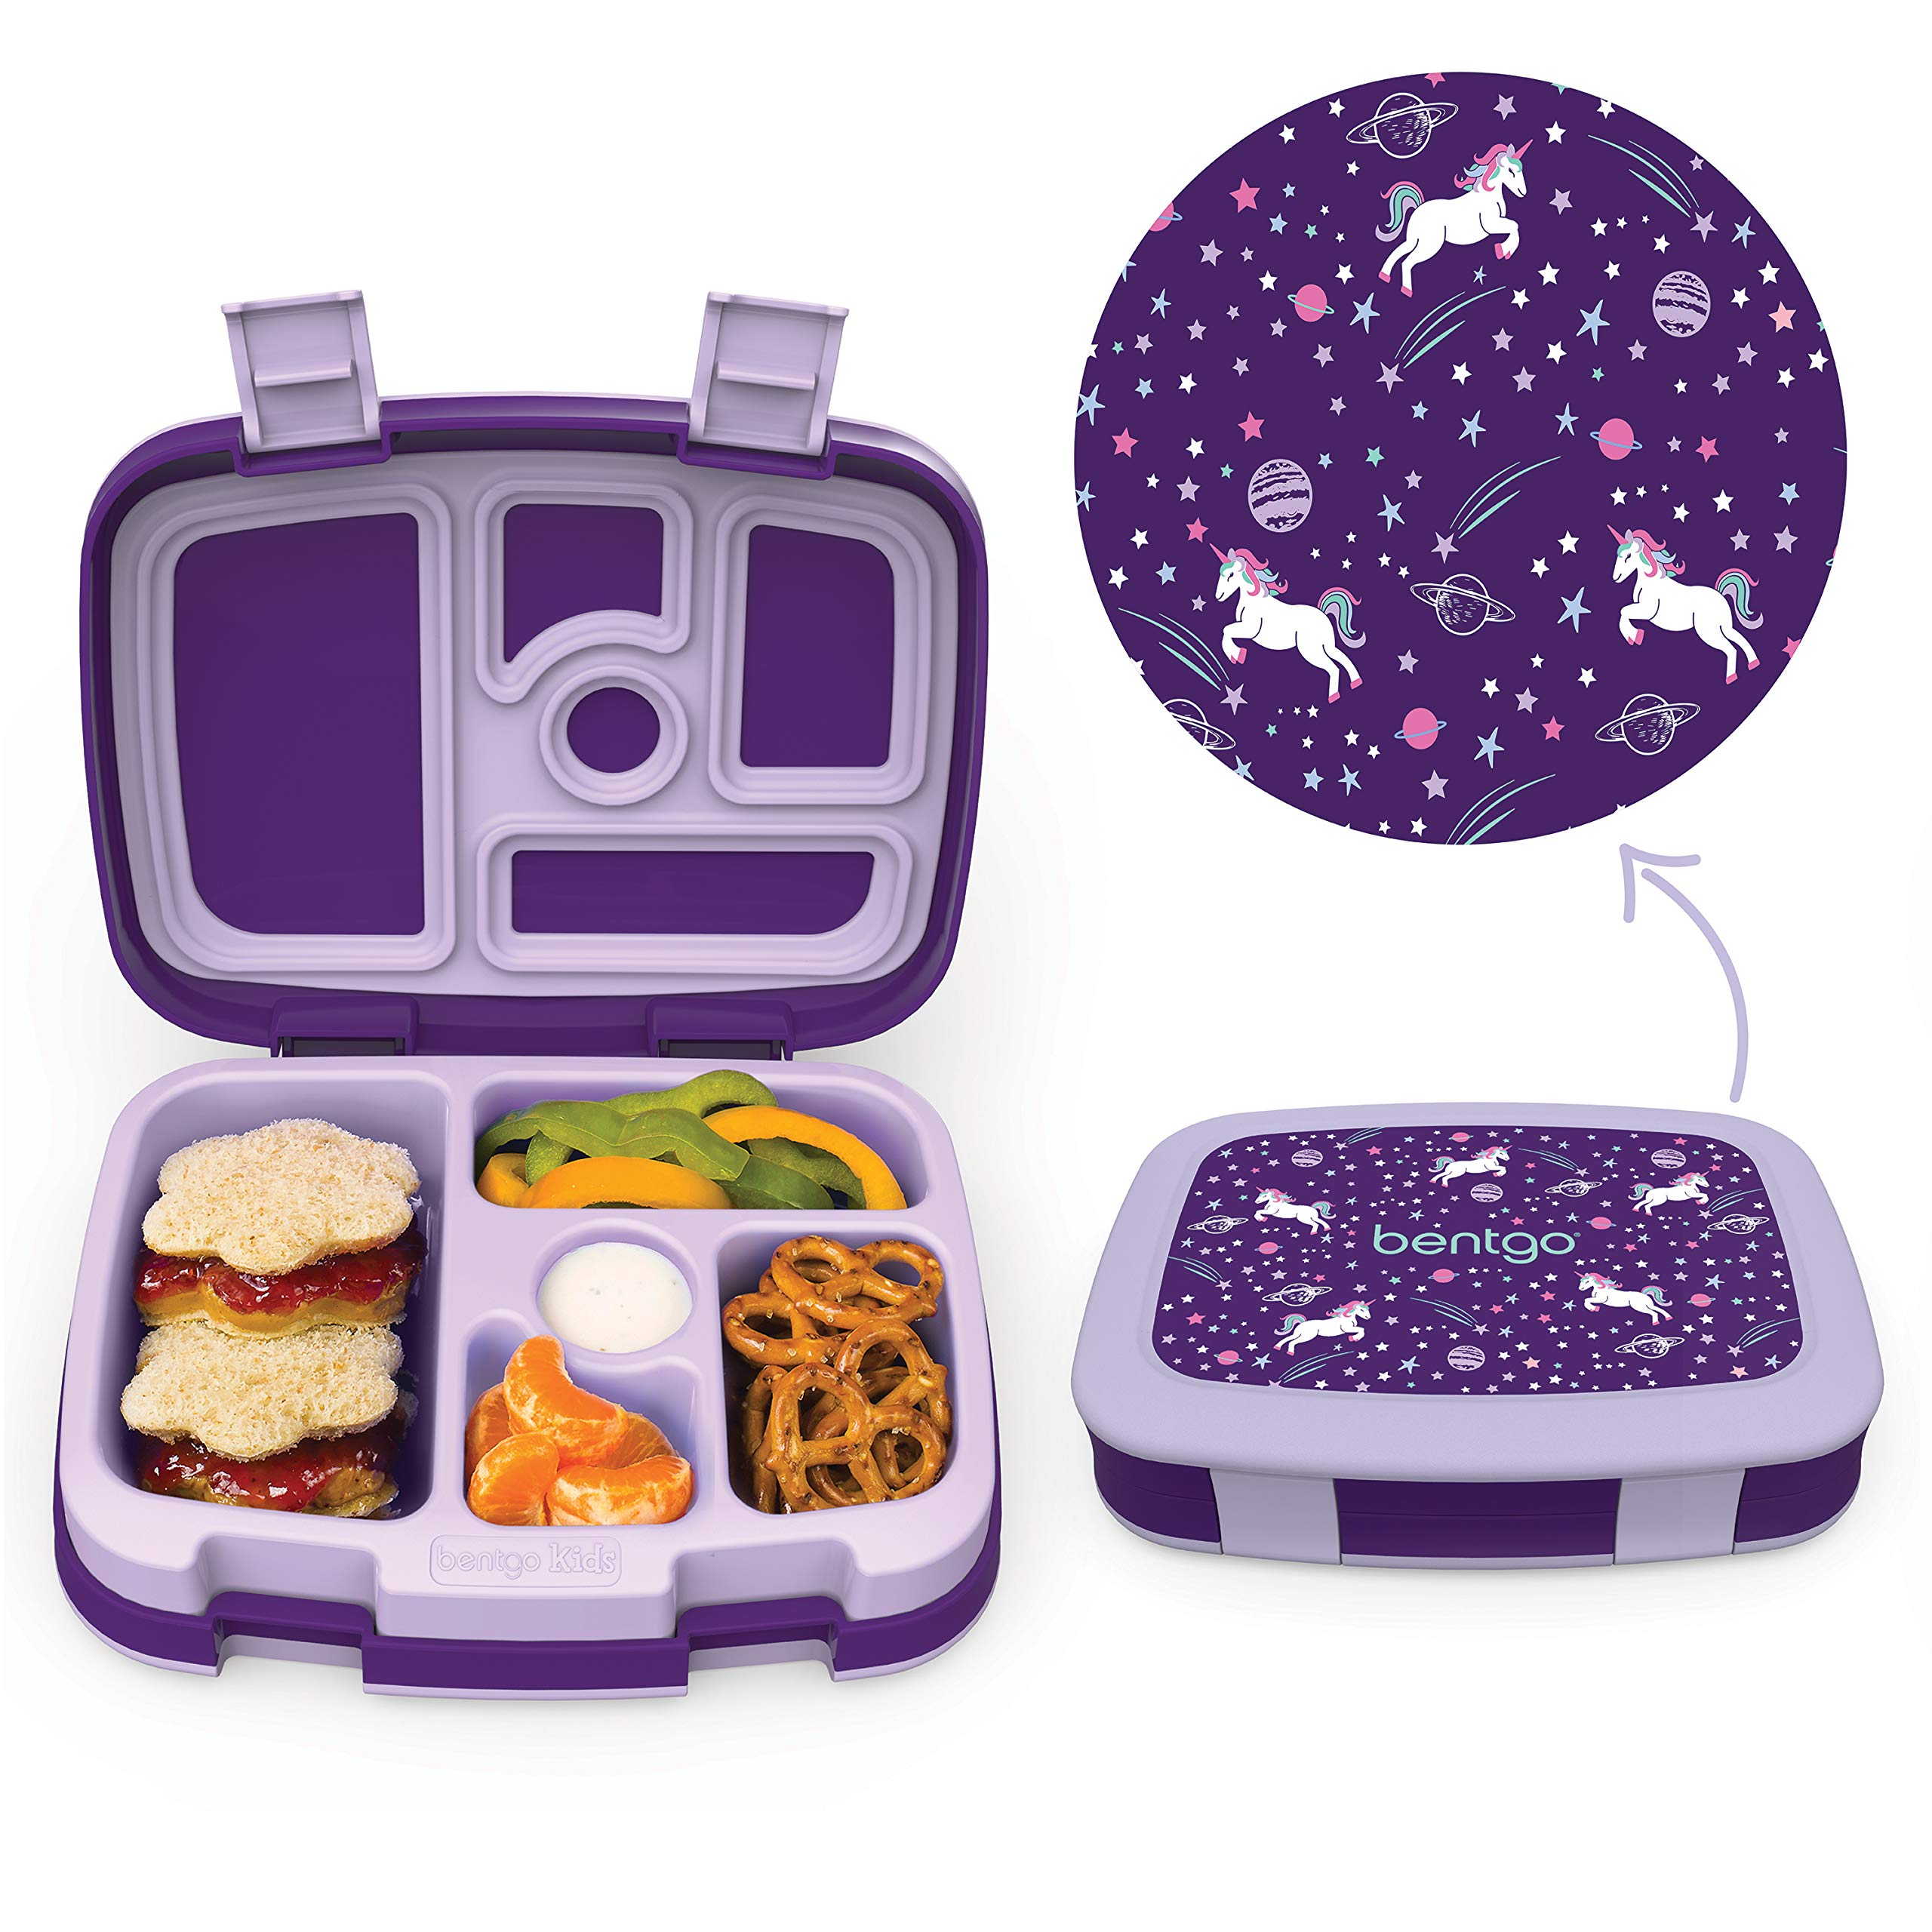 Bentgo Kids Prints (Unicorn) - Leak-Proof, 5-Compartment Bento-Style Kids Lunch Box - Ideal Portion Sizes for Ages 3 to 7 - BPA-Free and Food-Safe Materials by Bentgo